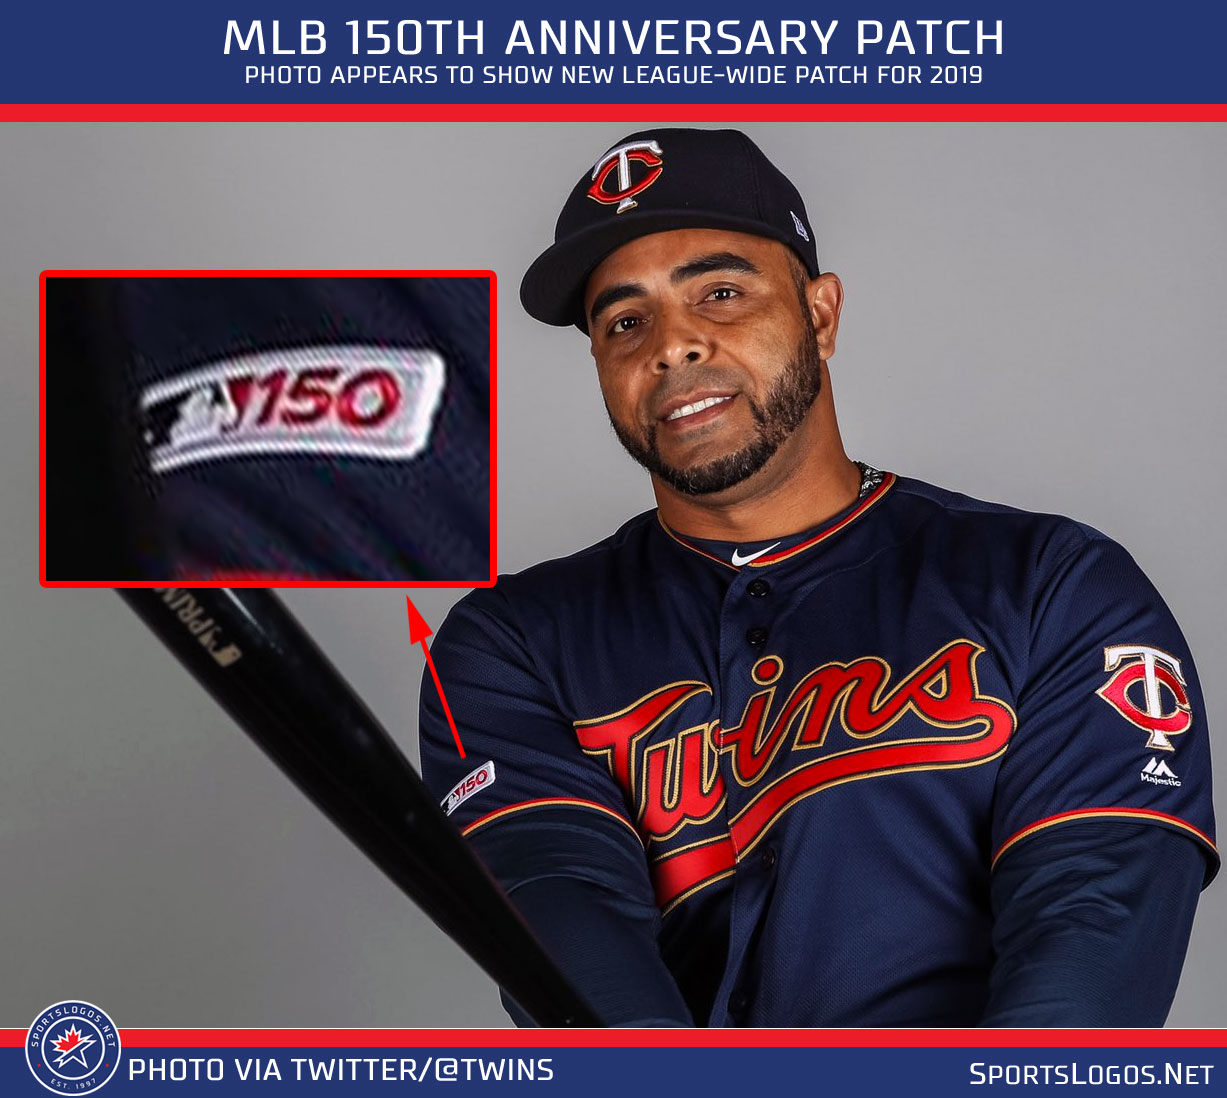 a088fa29a15 MLB 150th Anniversary Patch for 2019 Spotted